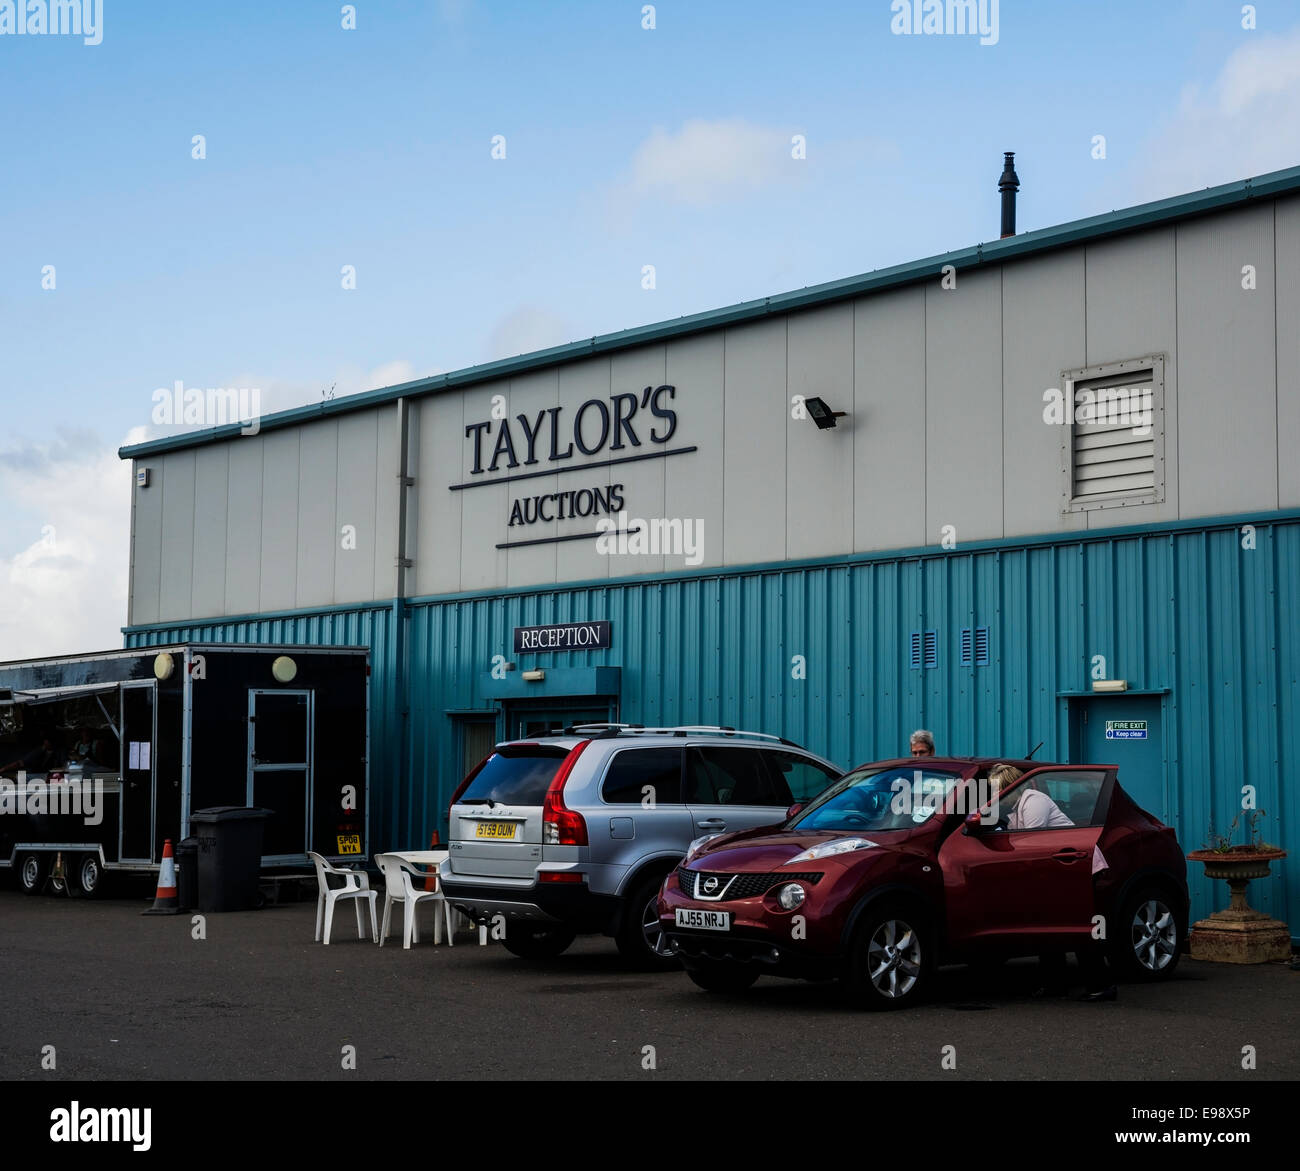 Taylor's Auctioneers have a purpose built facility in Montrose. - Stock Image